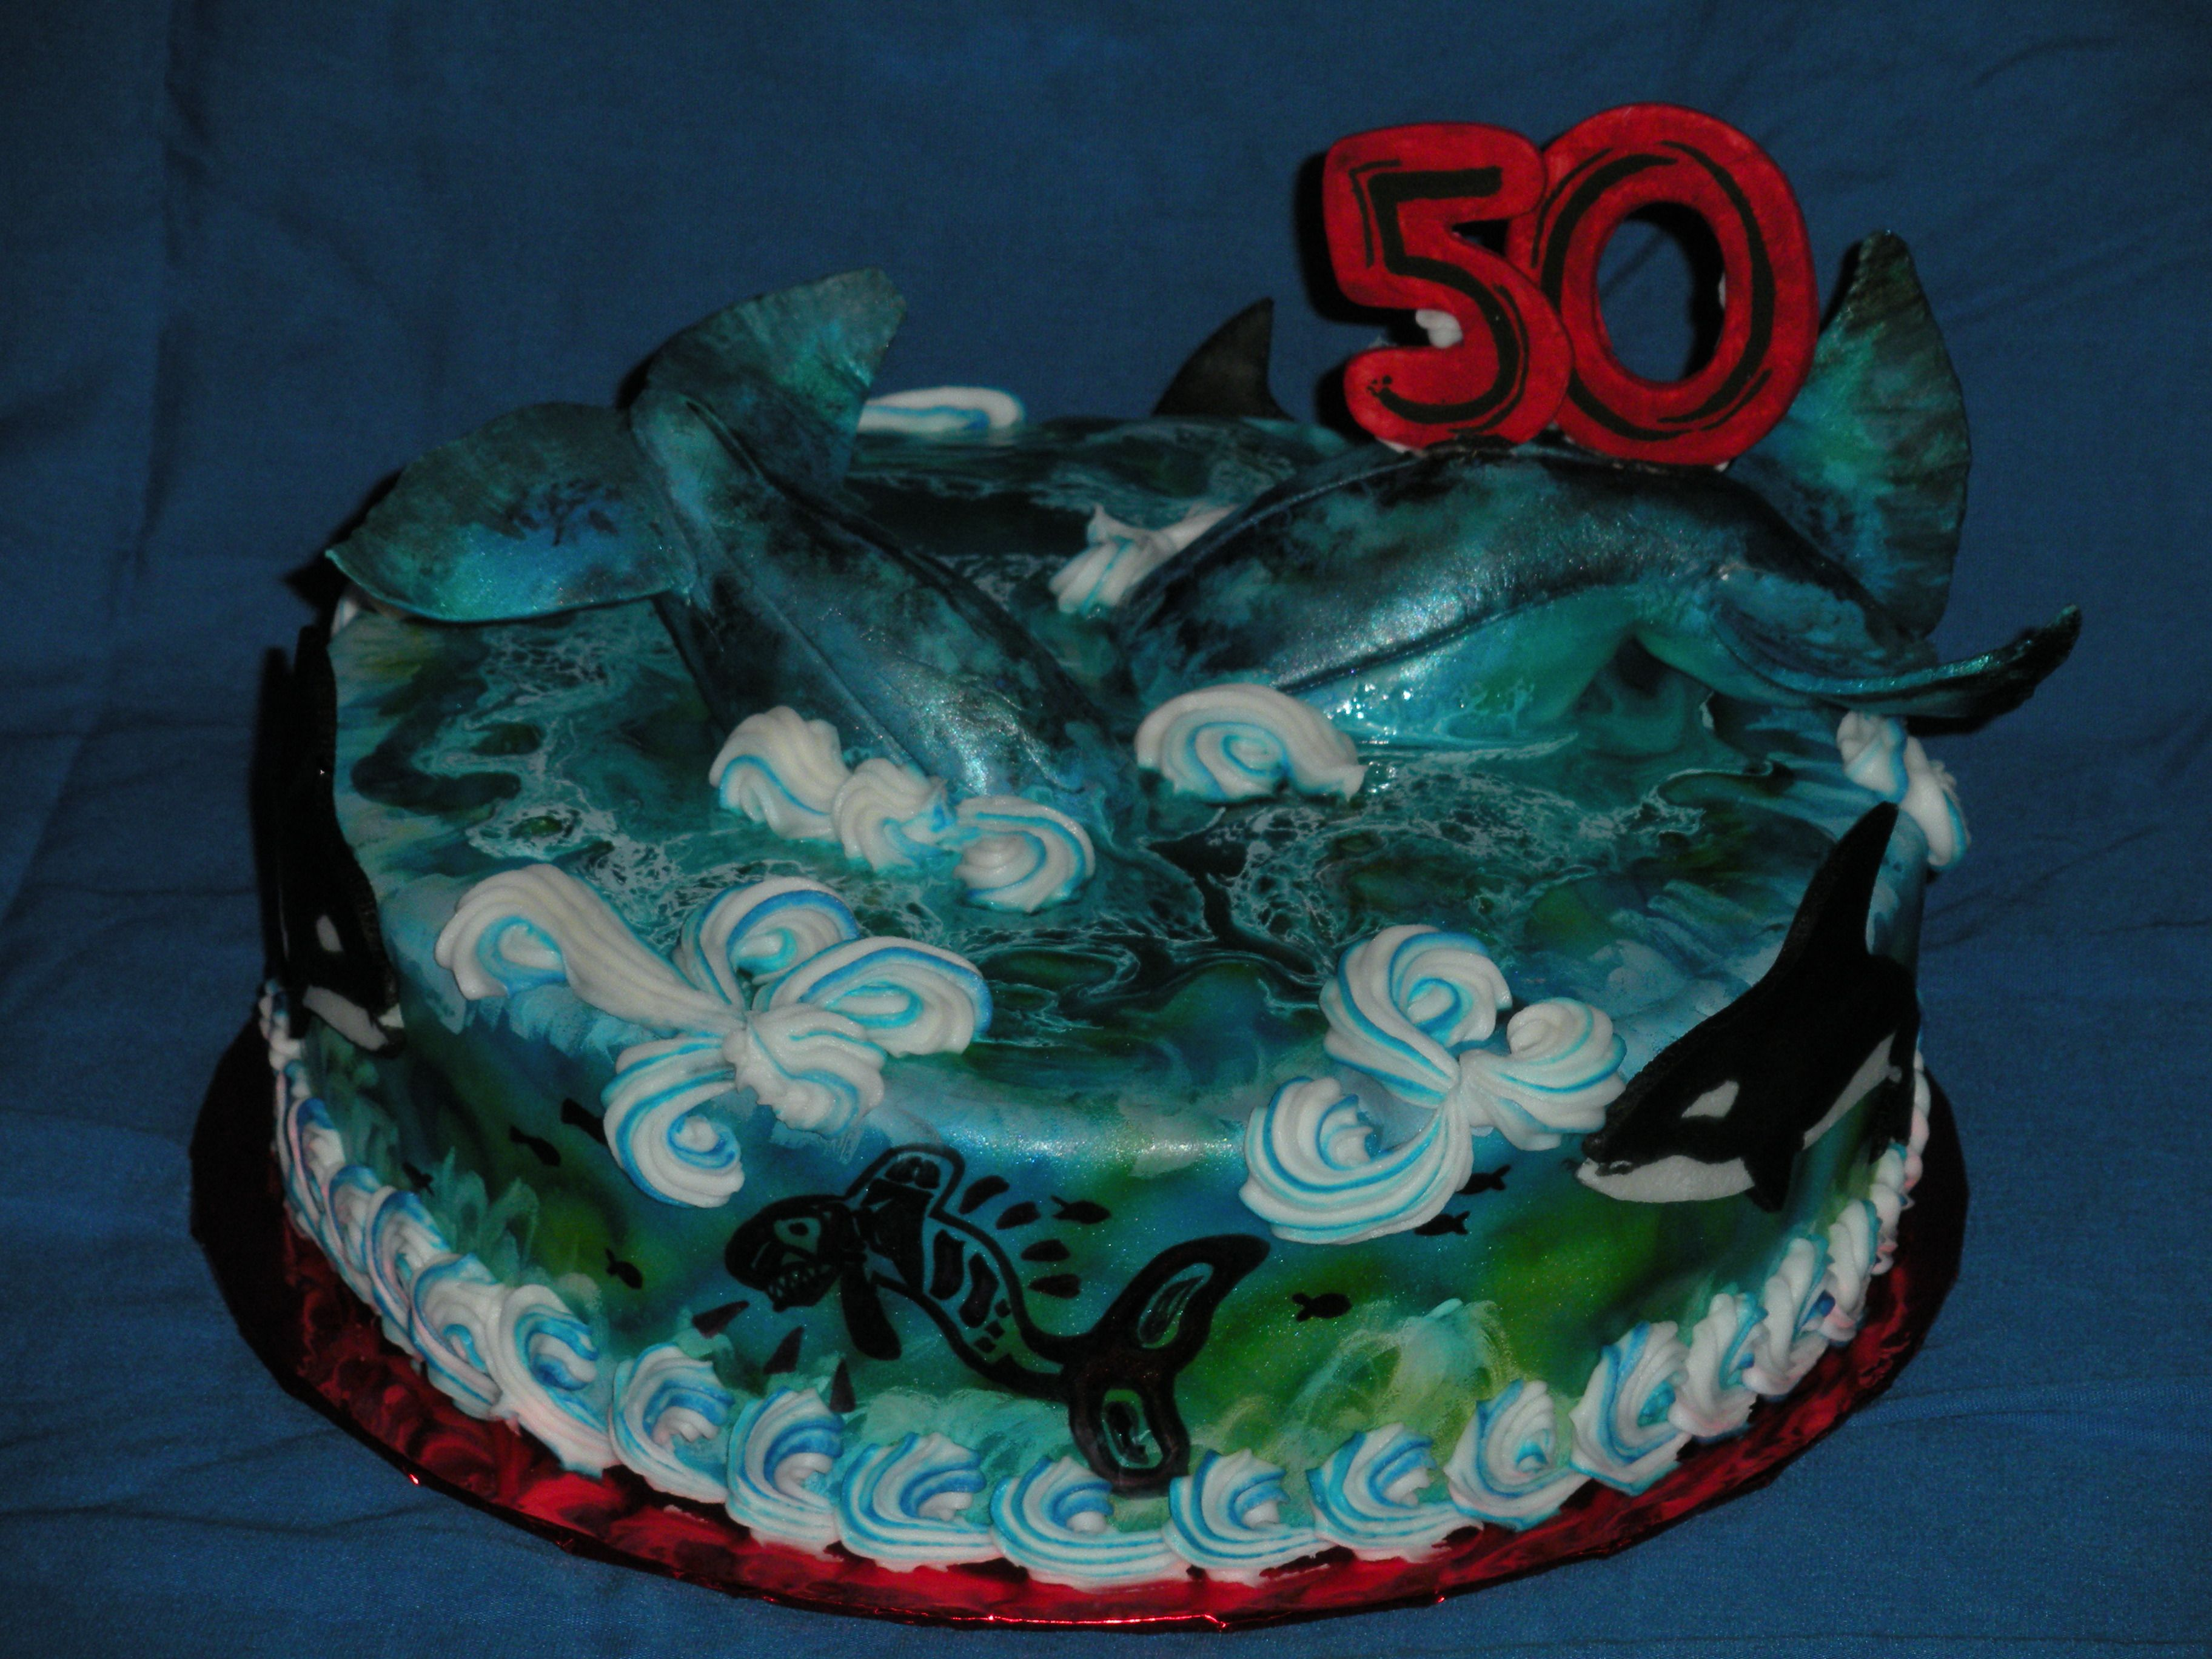 Pin By M Y D On Duff Goldman 3 Cake Decorating Cake Cake